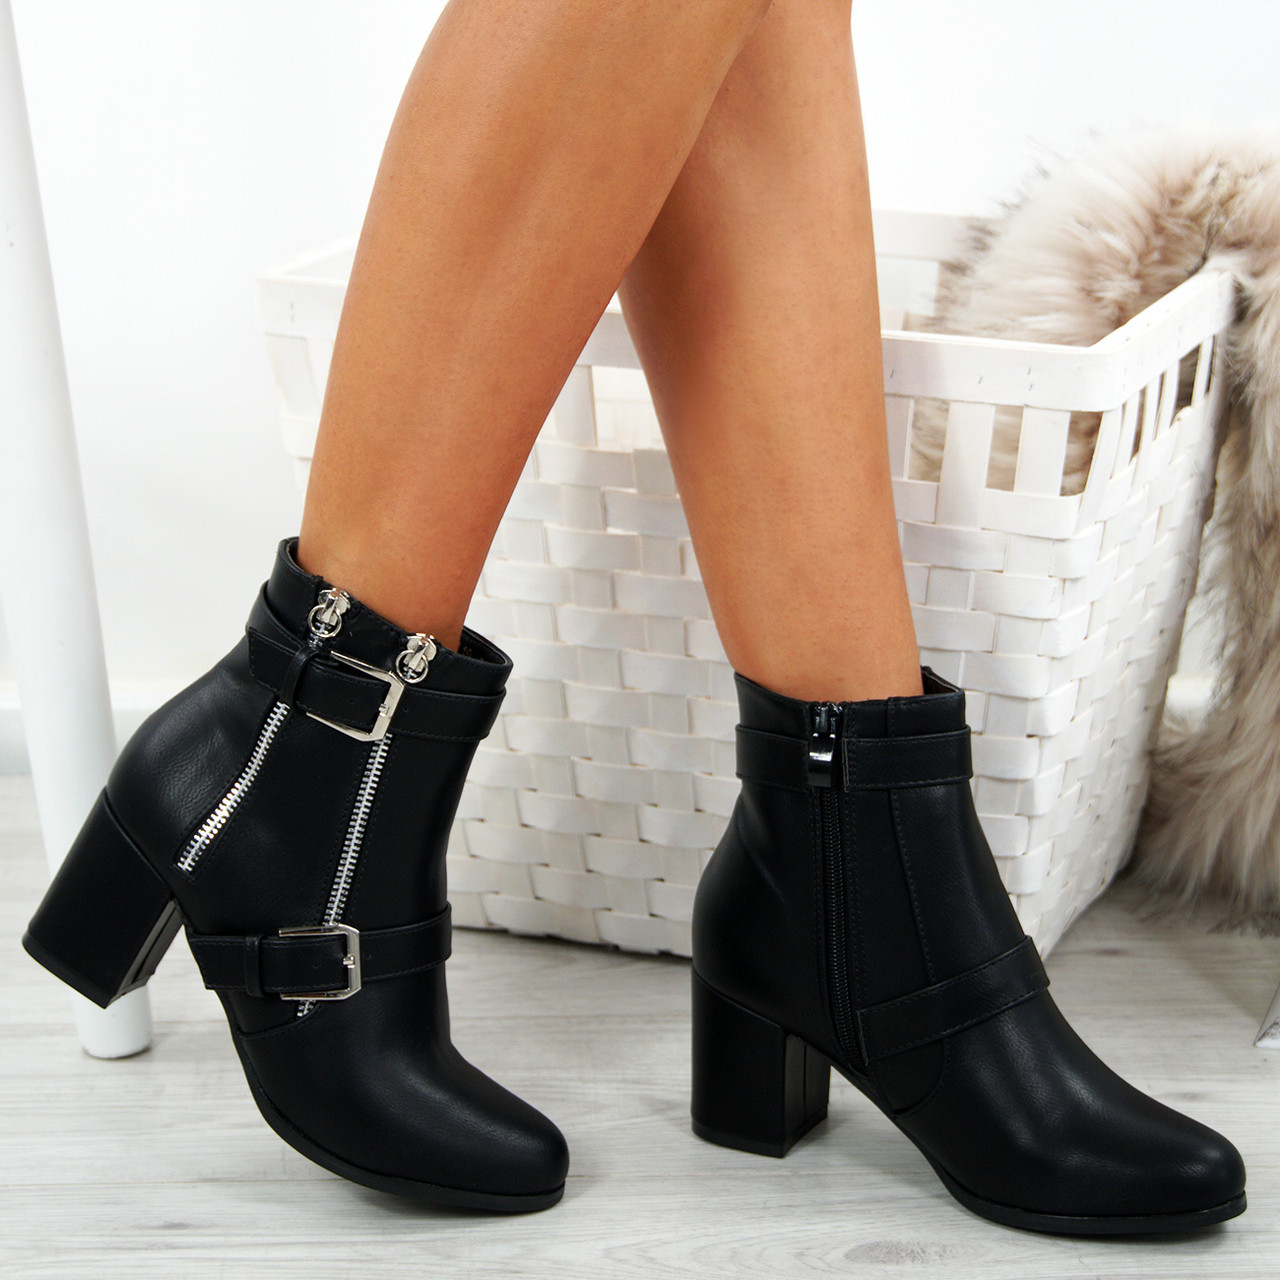 837d273a79c1 Womens Ladies Block Heel Ankle Boots Buckle Double Zip Casual Shoes Size